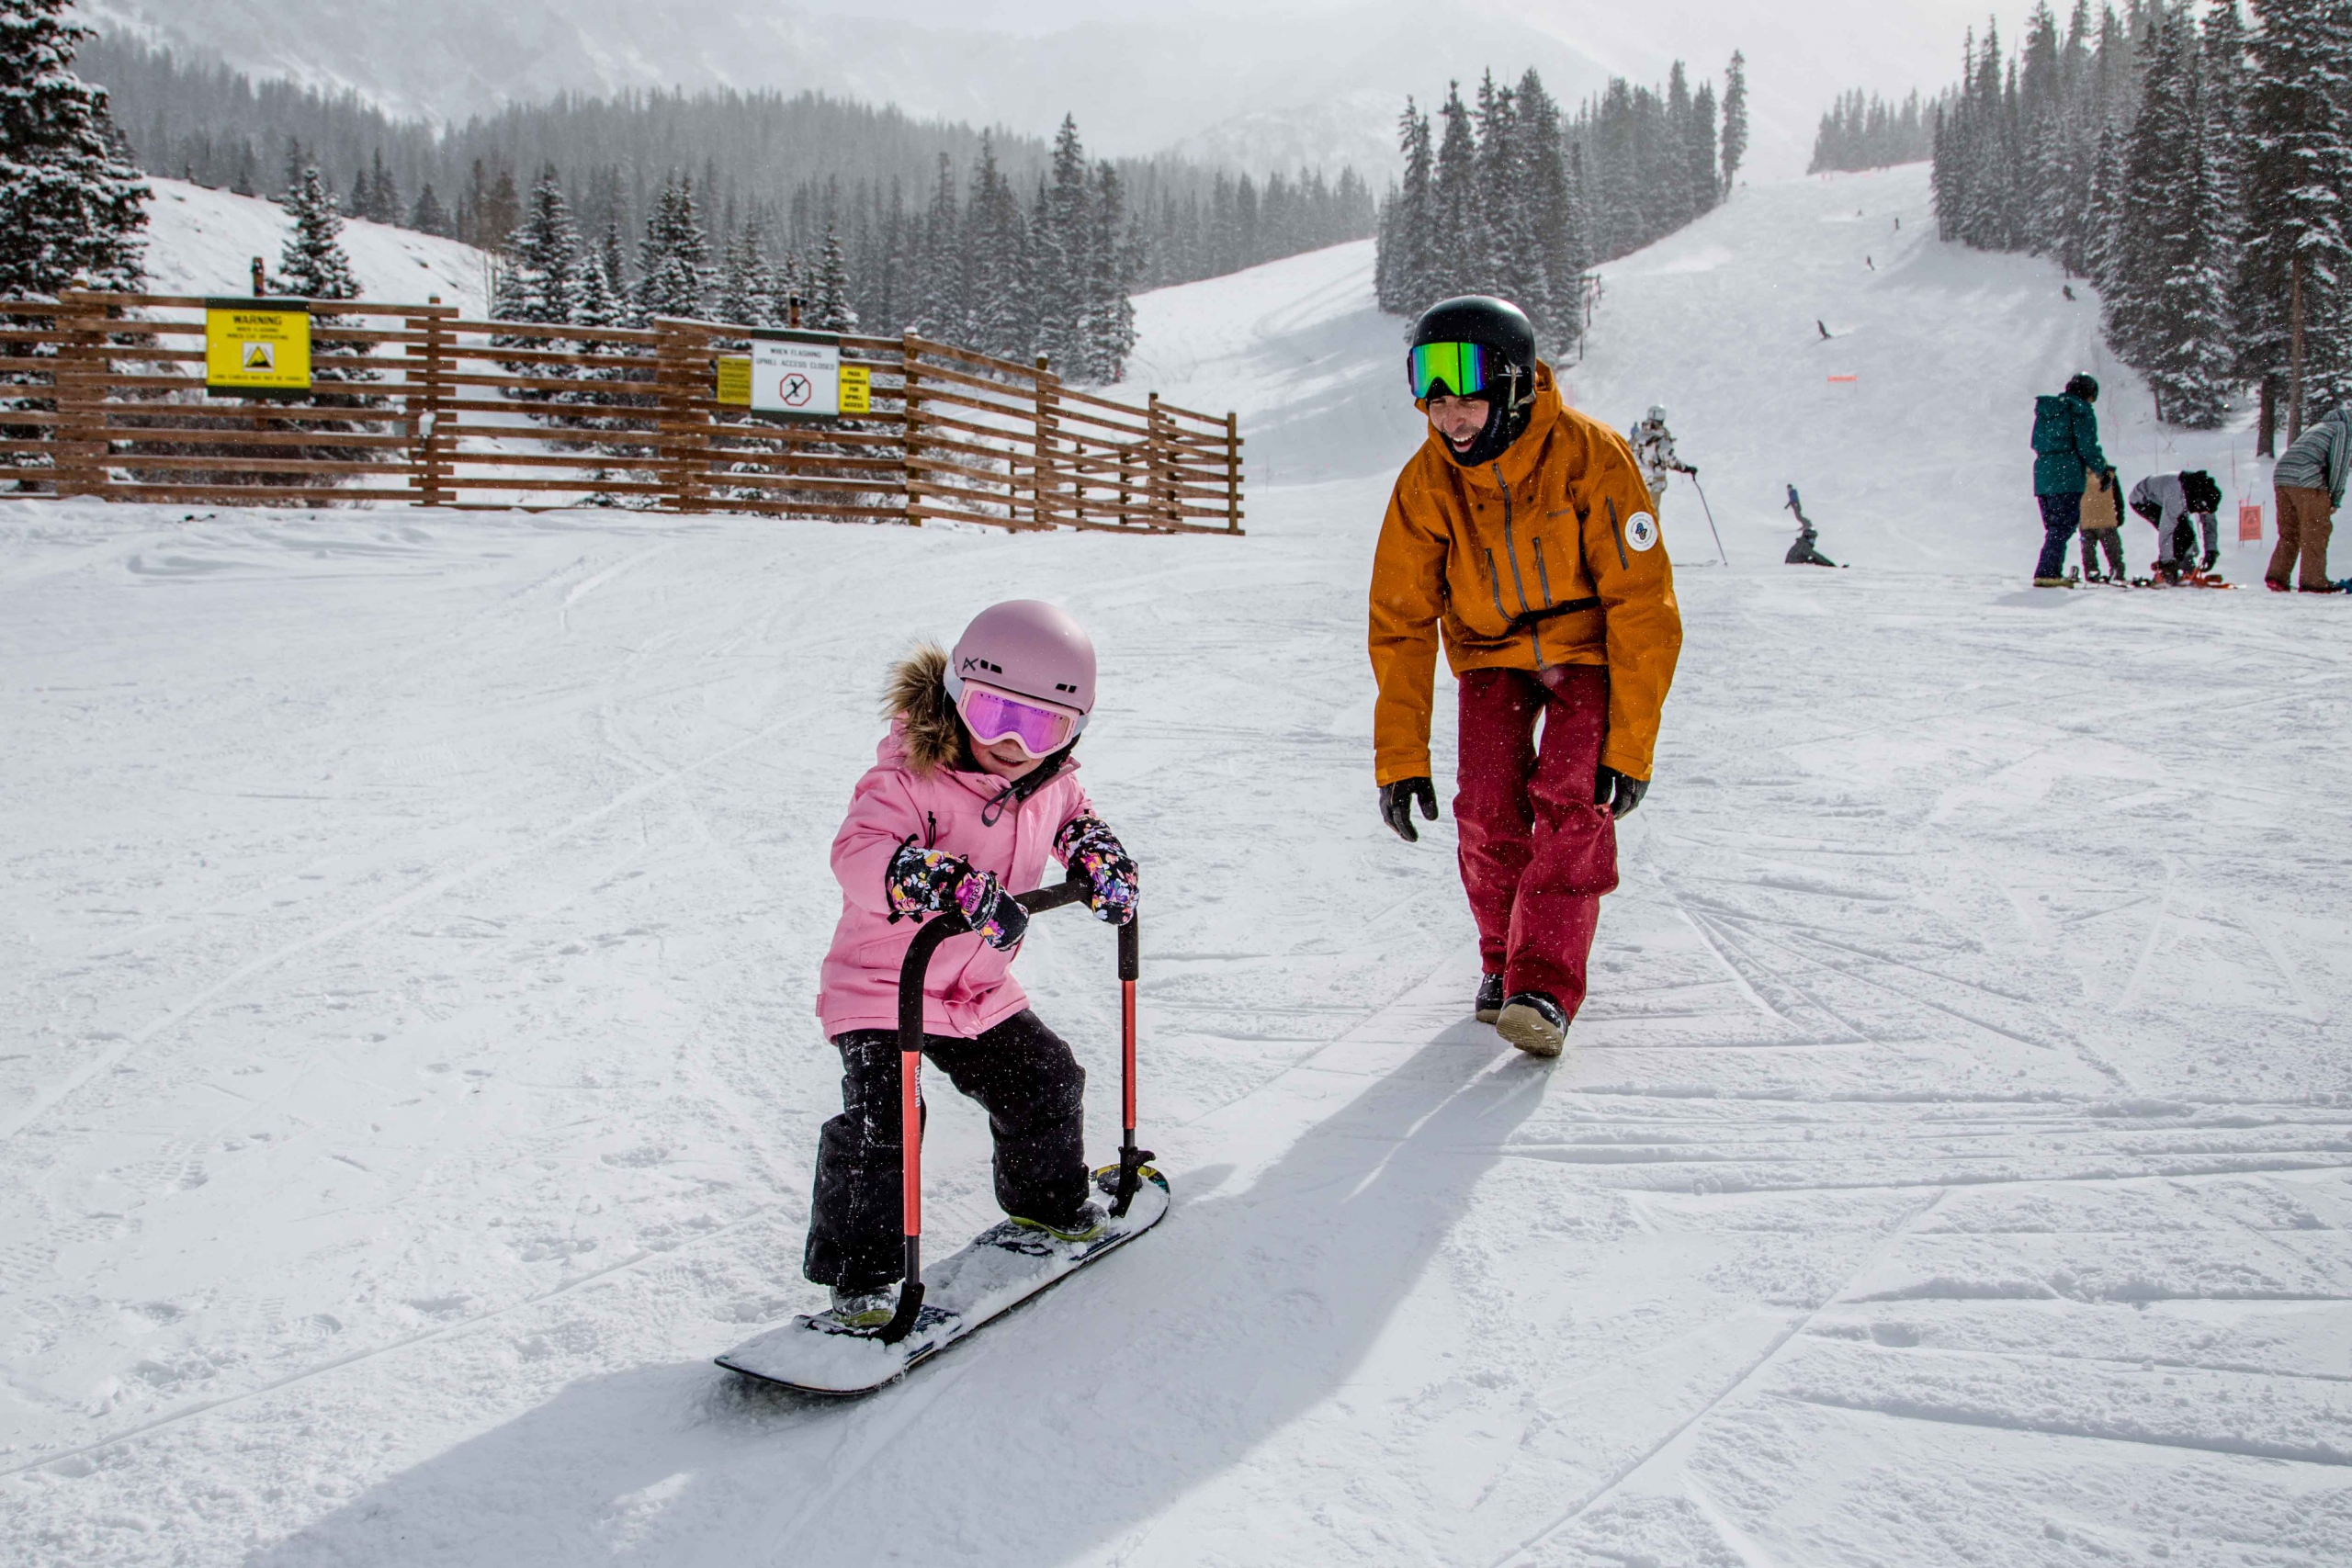 AASI Team member Tony Macri teaches a three-year-old to snowboard.